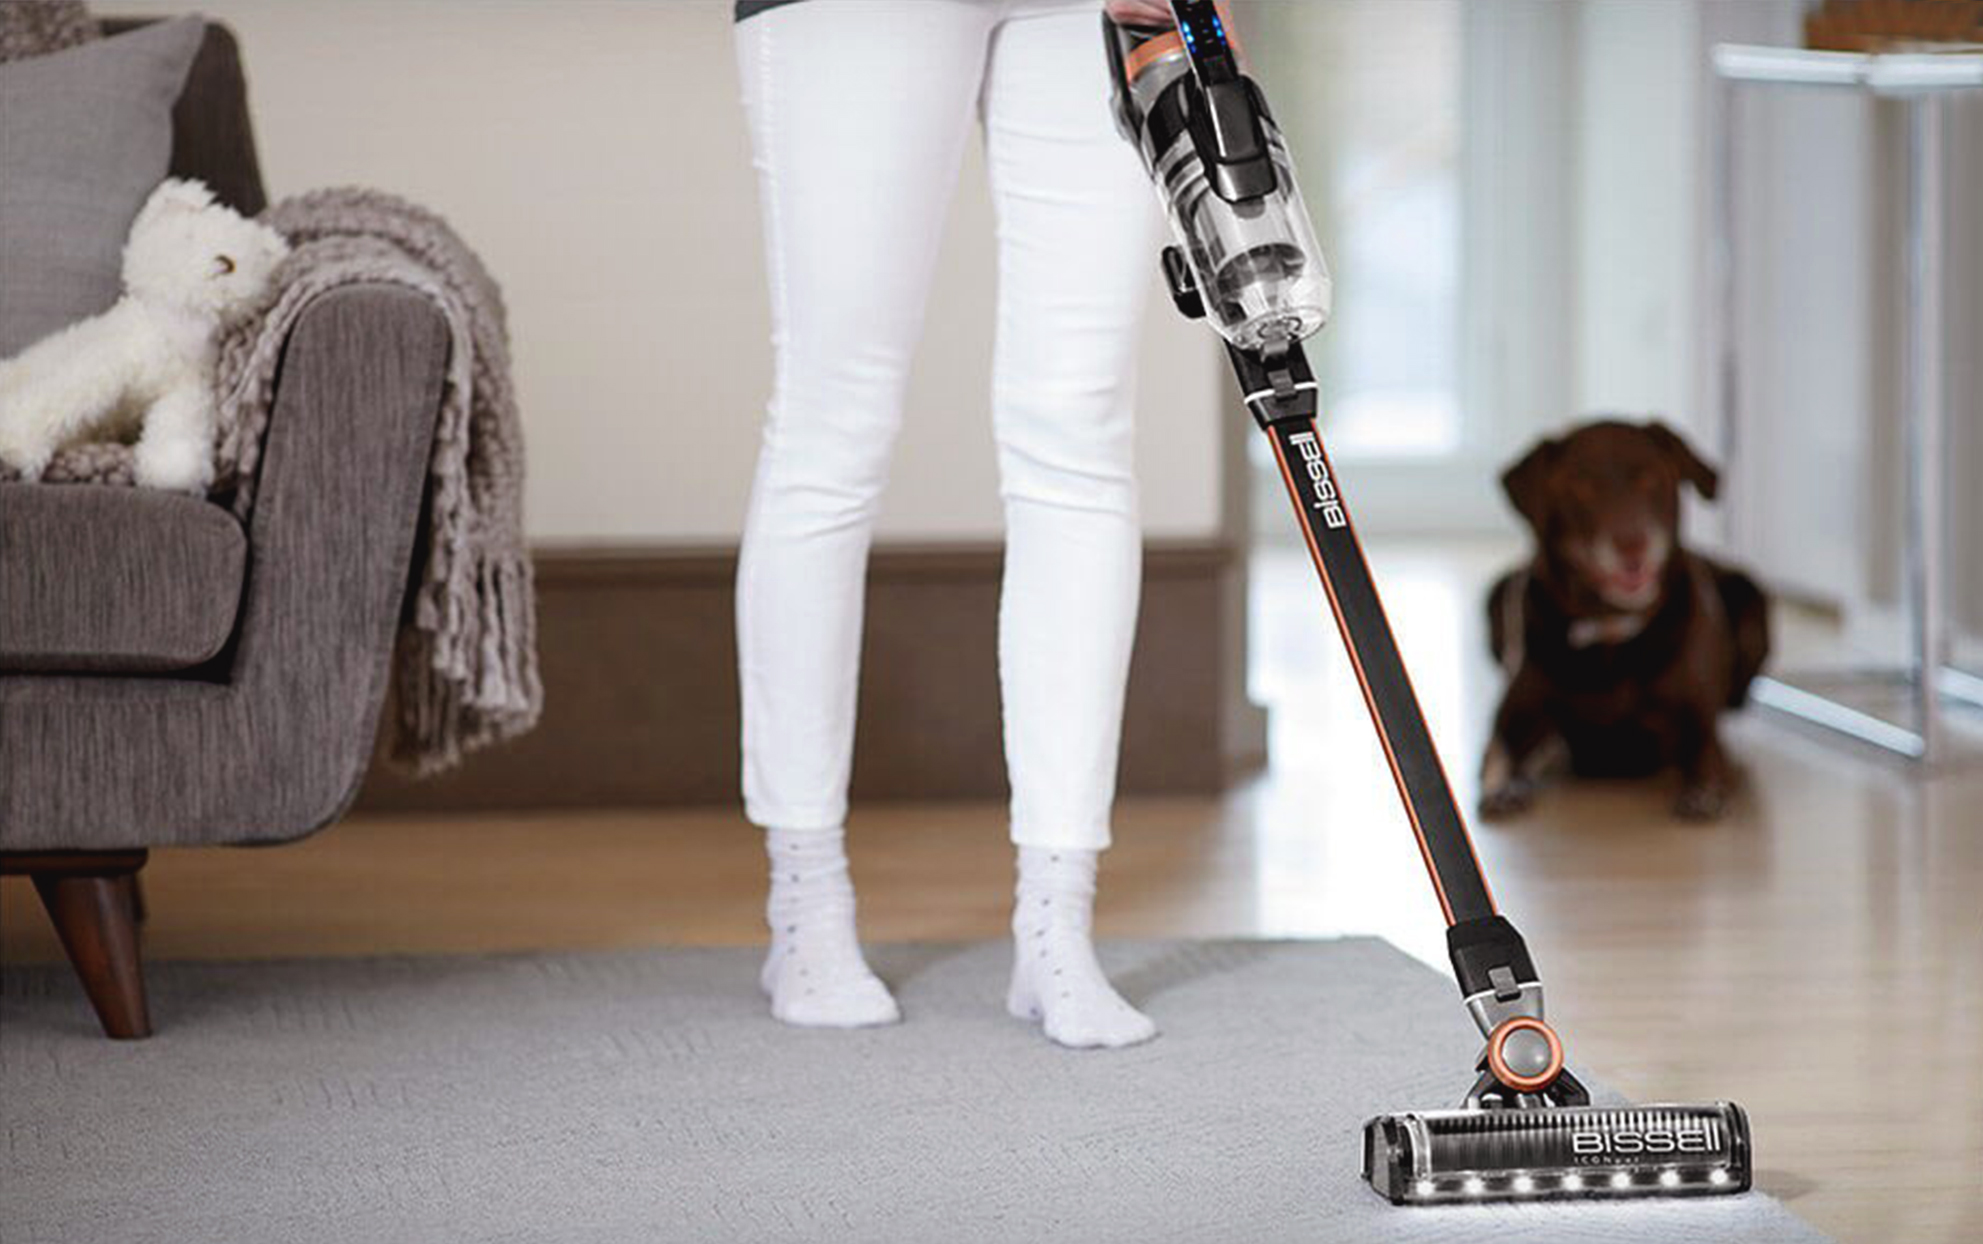 woman using a Bissell stick vacuum